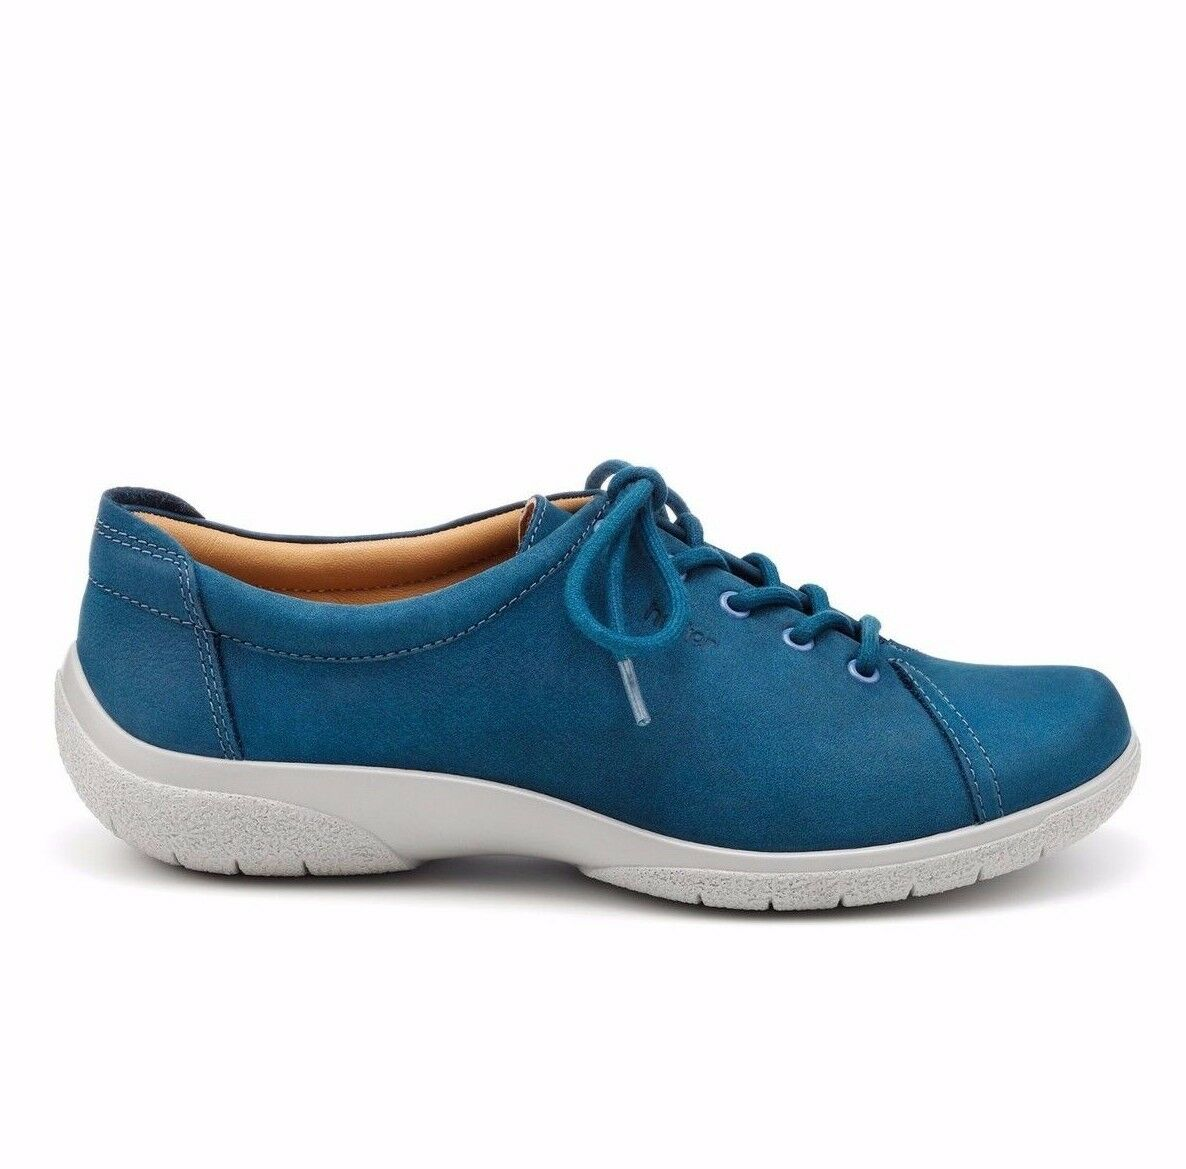 Hotter Dew Damenschuhe Nubuck UK 4.5 Cobalt Blau Nubuck Damenschuhe Leder Lace Up Trainer Style Pumps e40732